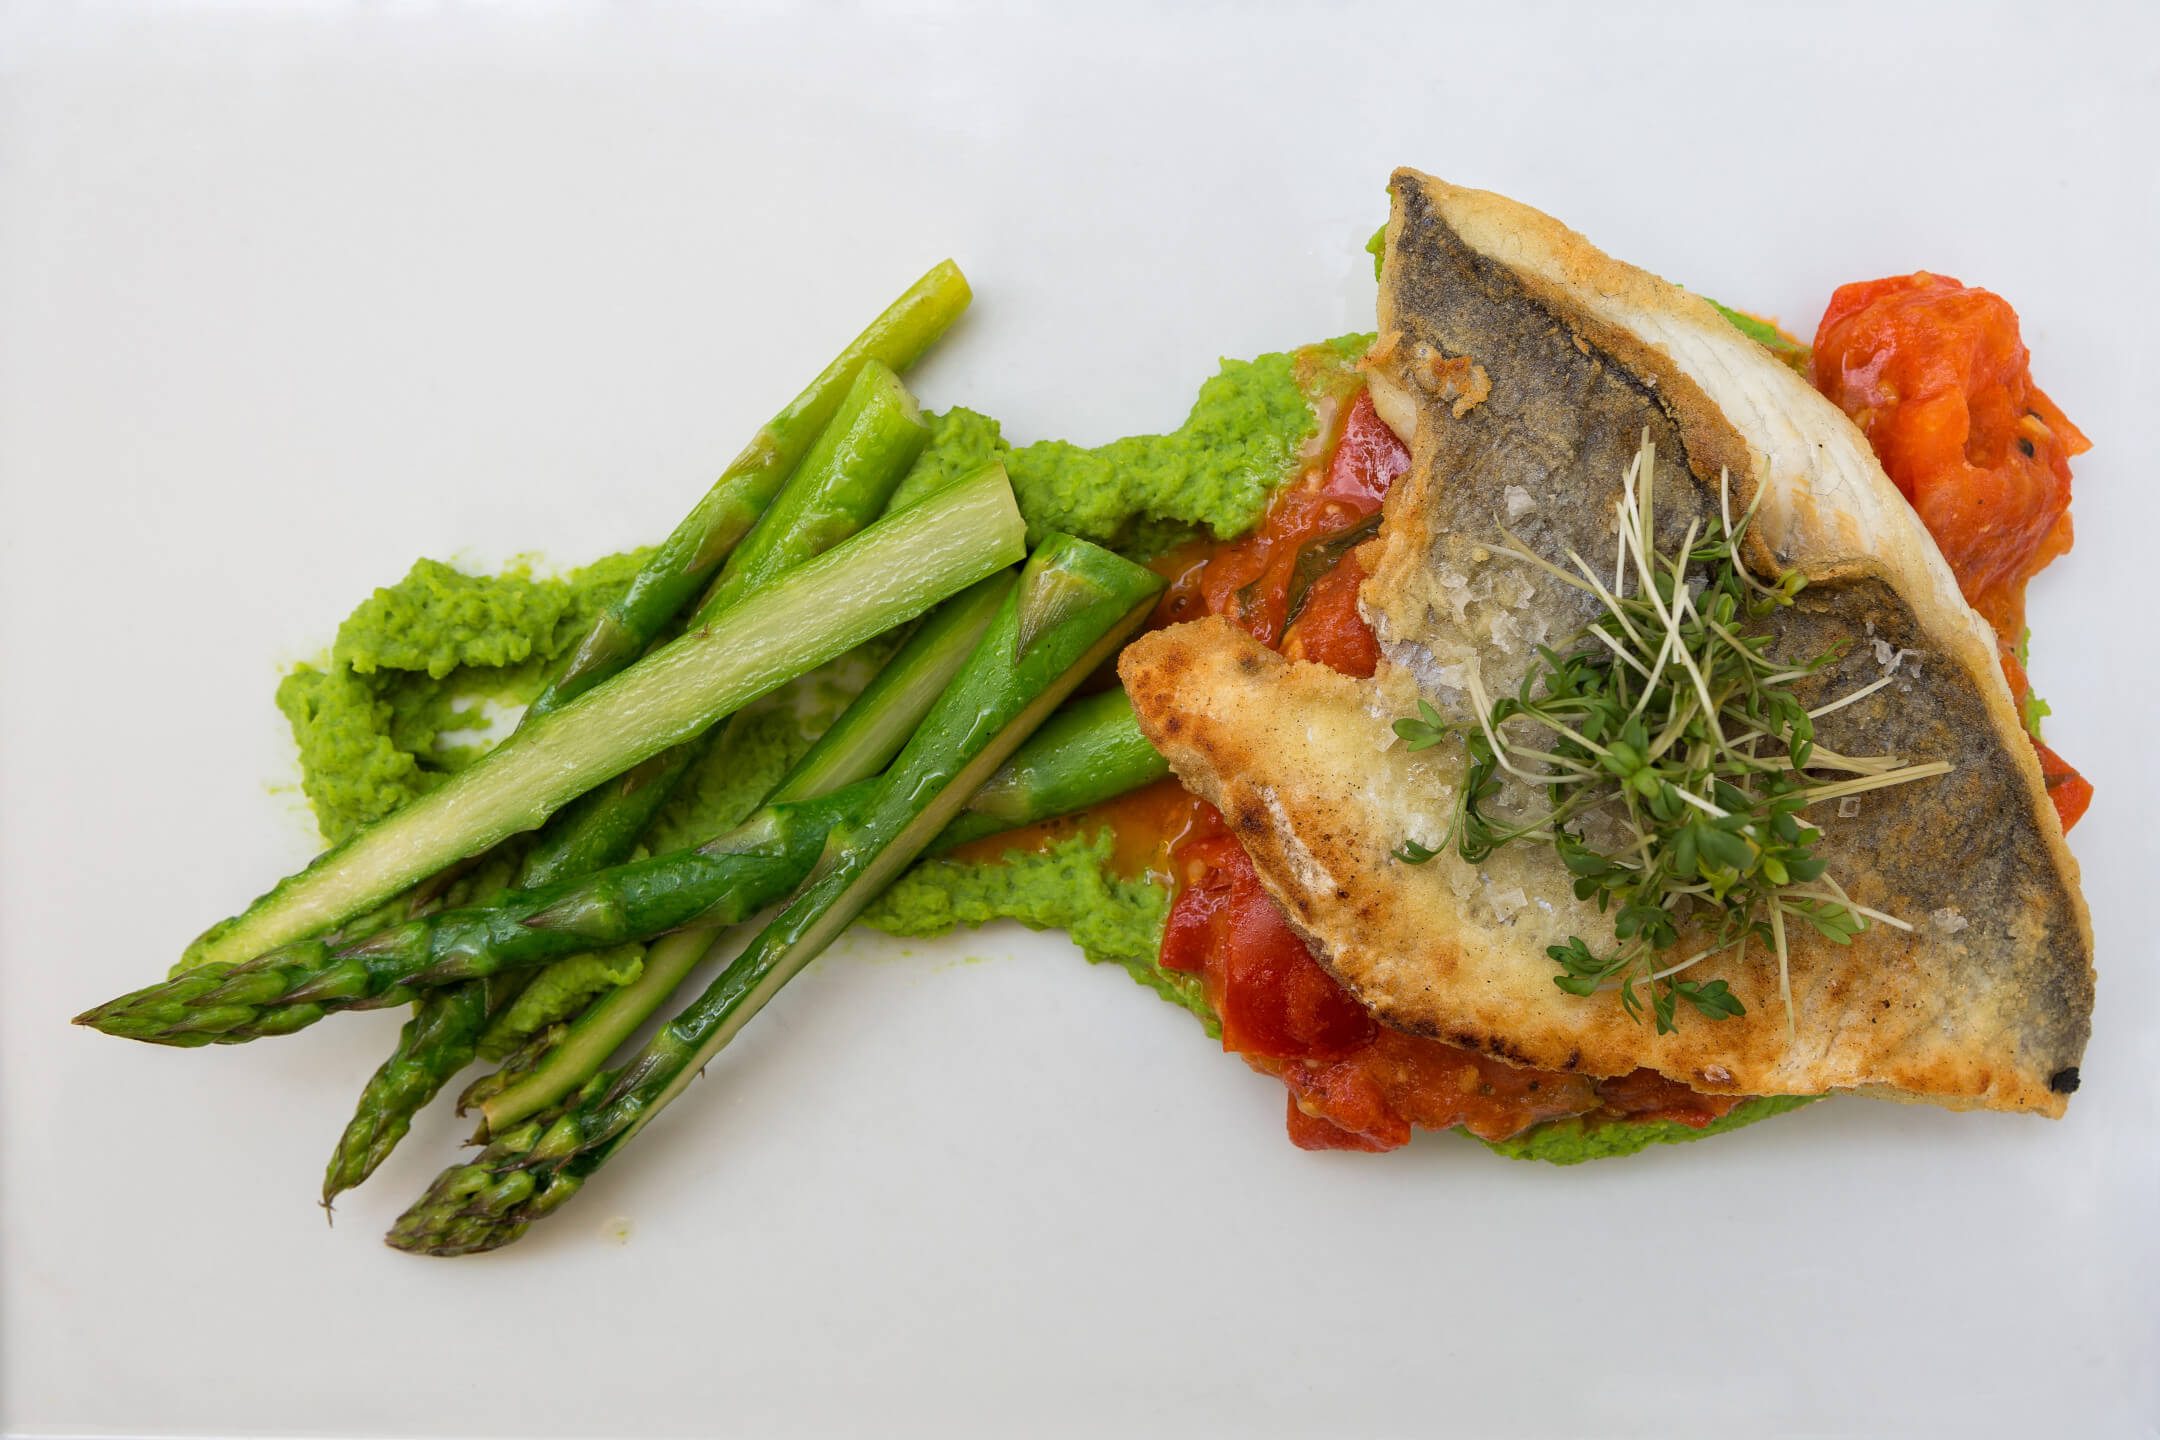 served plate with asparagus and fish